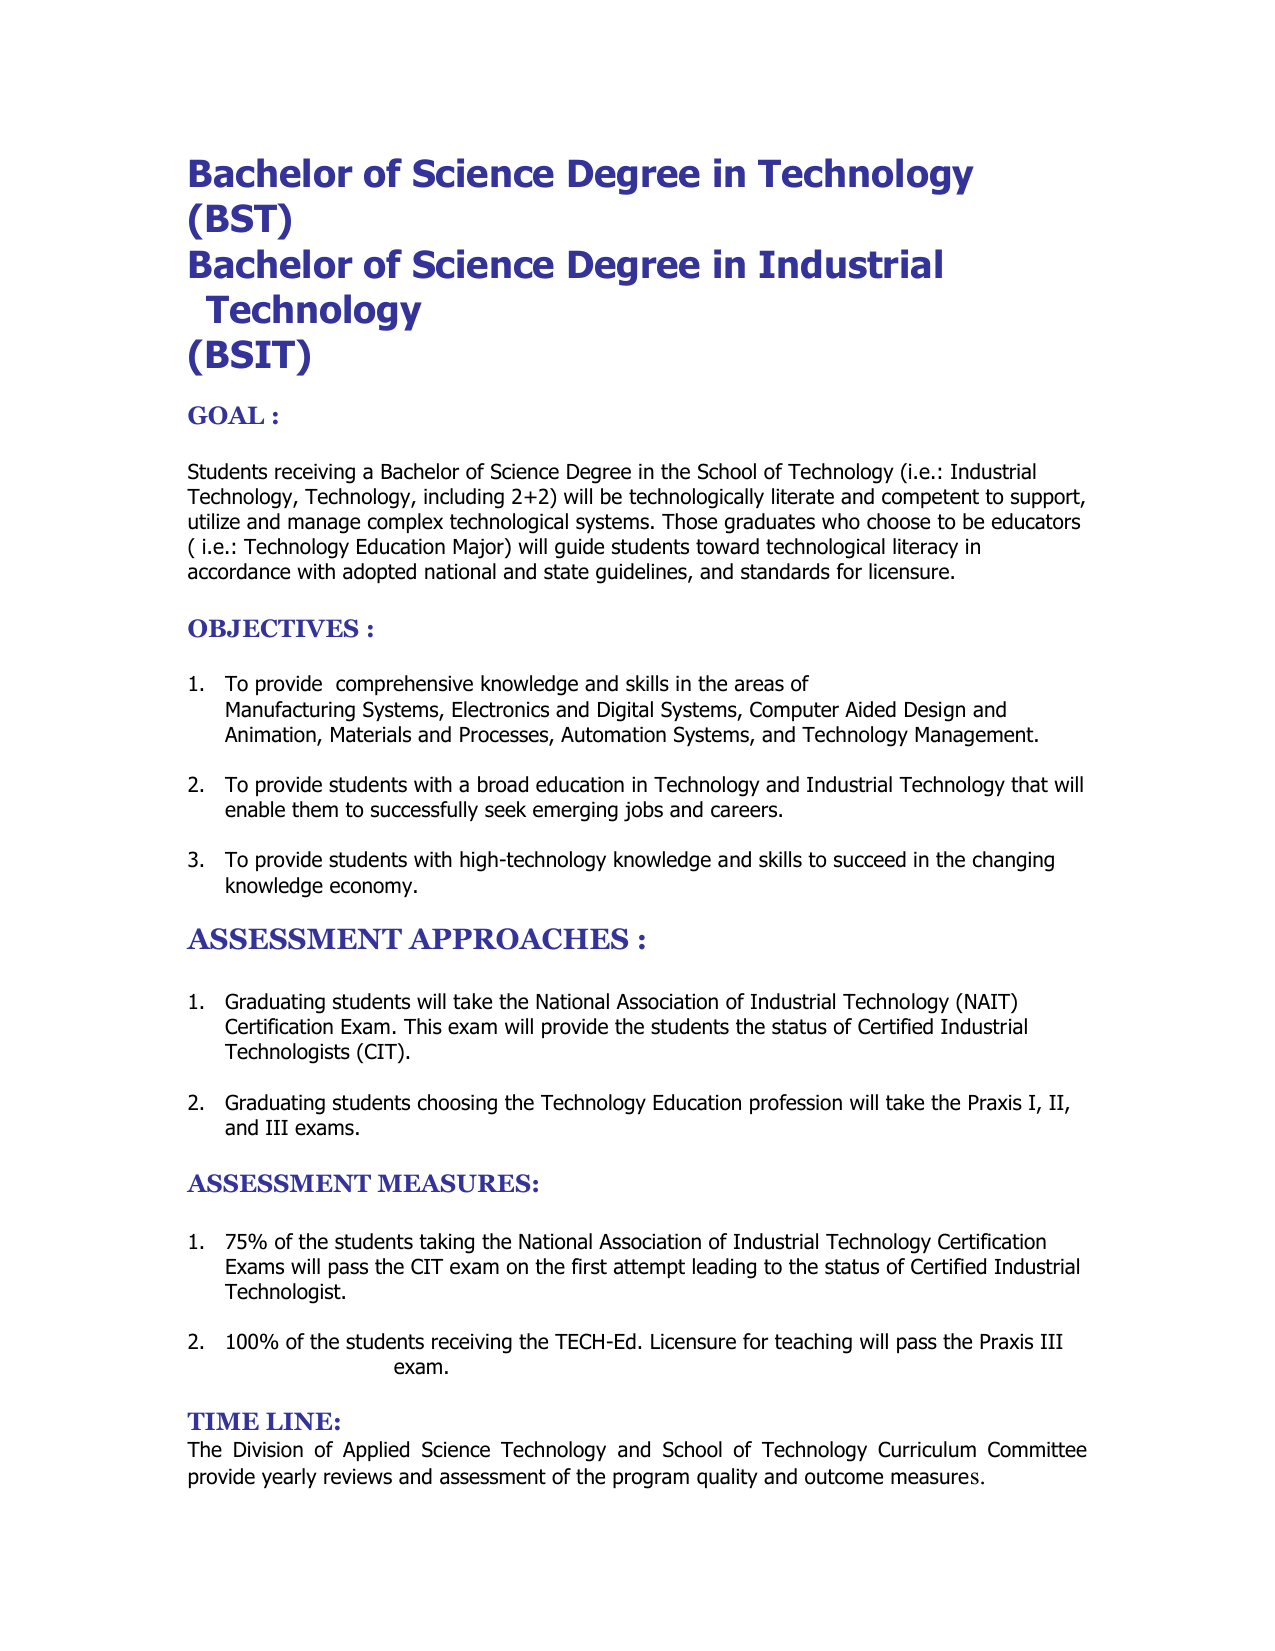 Bachelor Of Science Degree In Technology Bst